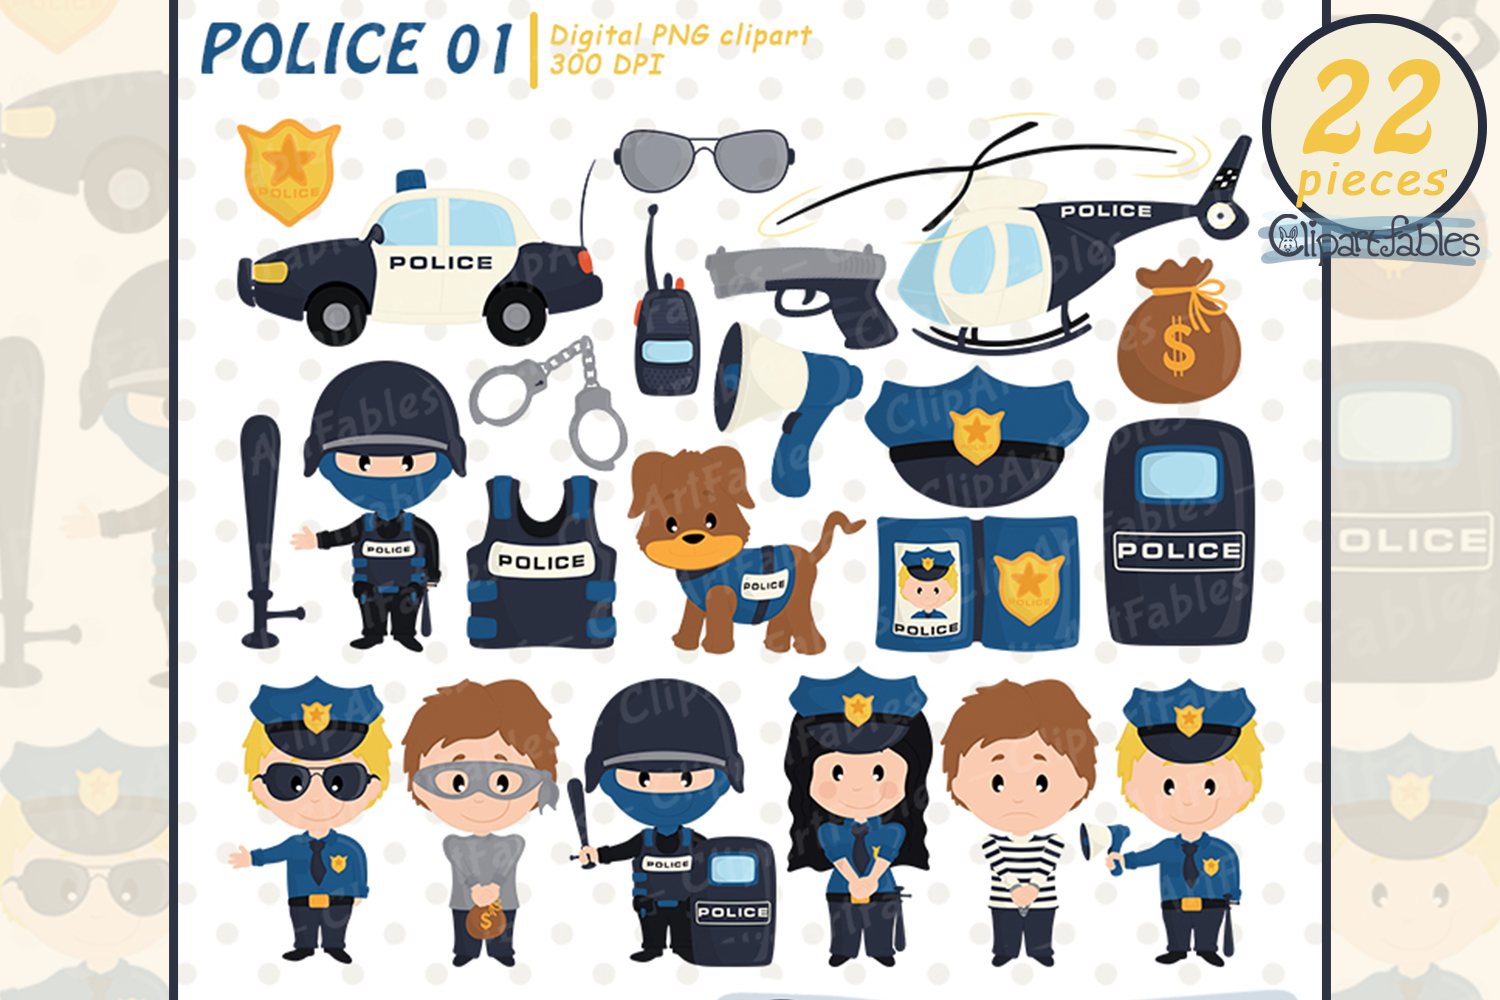 POLICE clipart, Cute policeman and bandit - INSTANT download example image 1